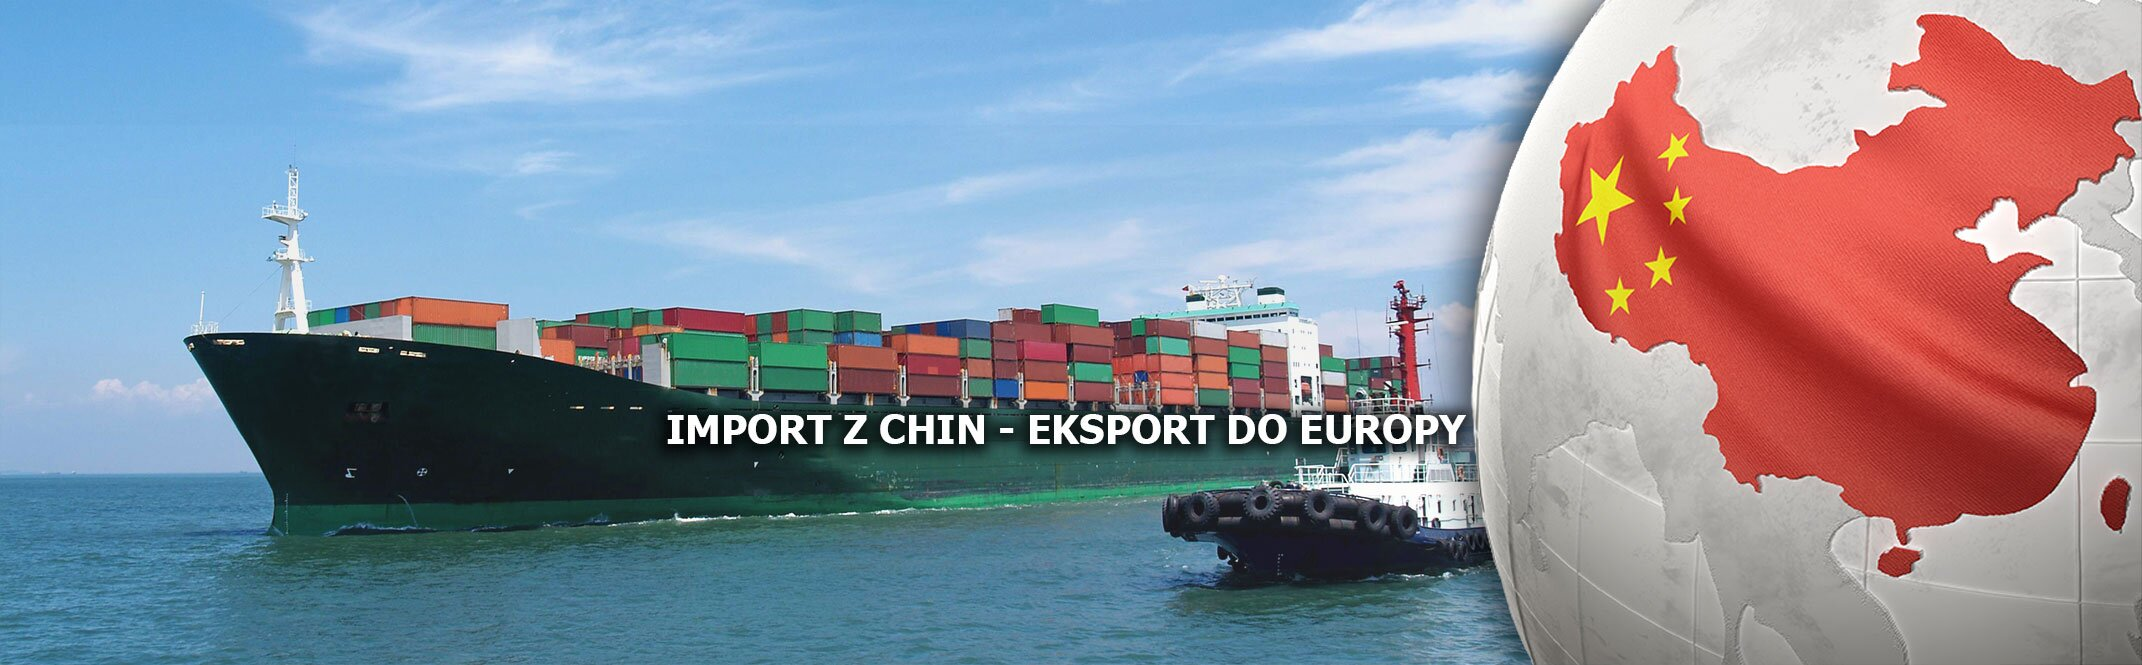 import z chin agent w chinach